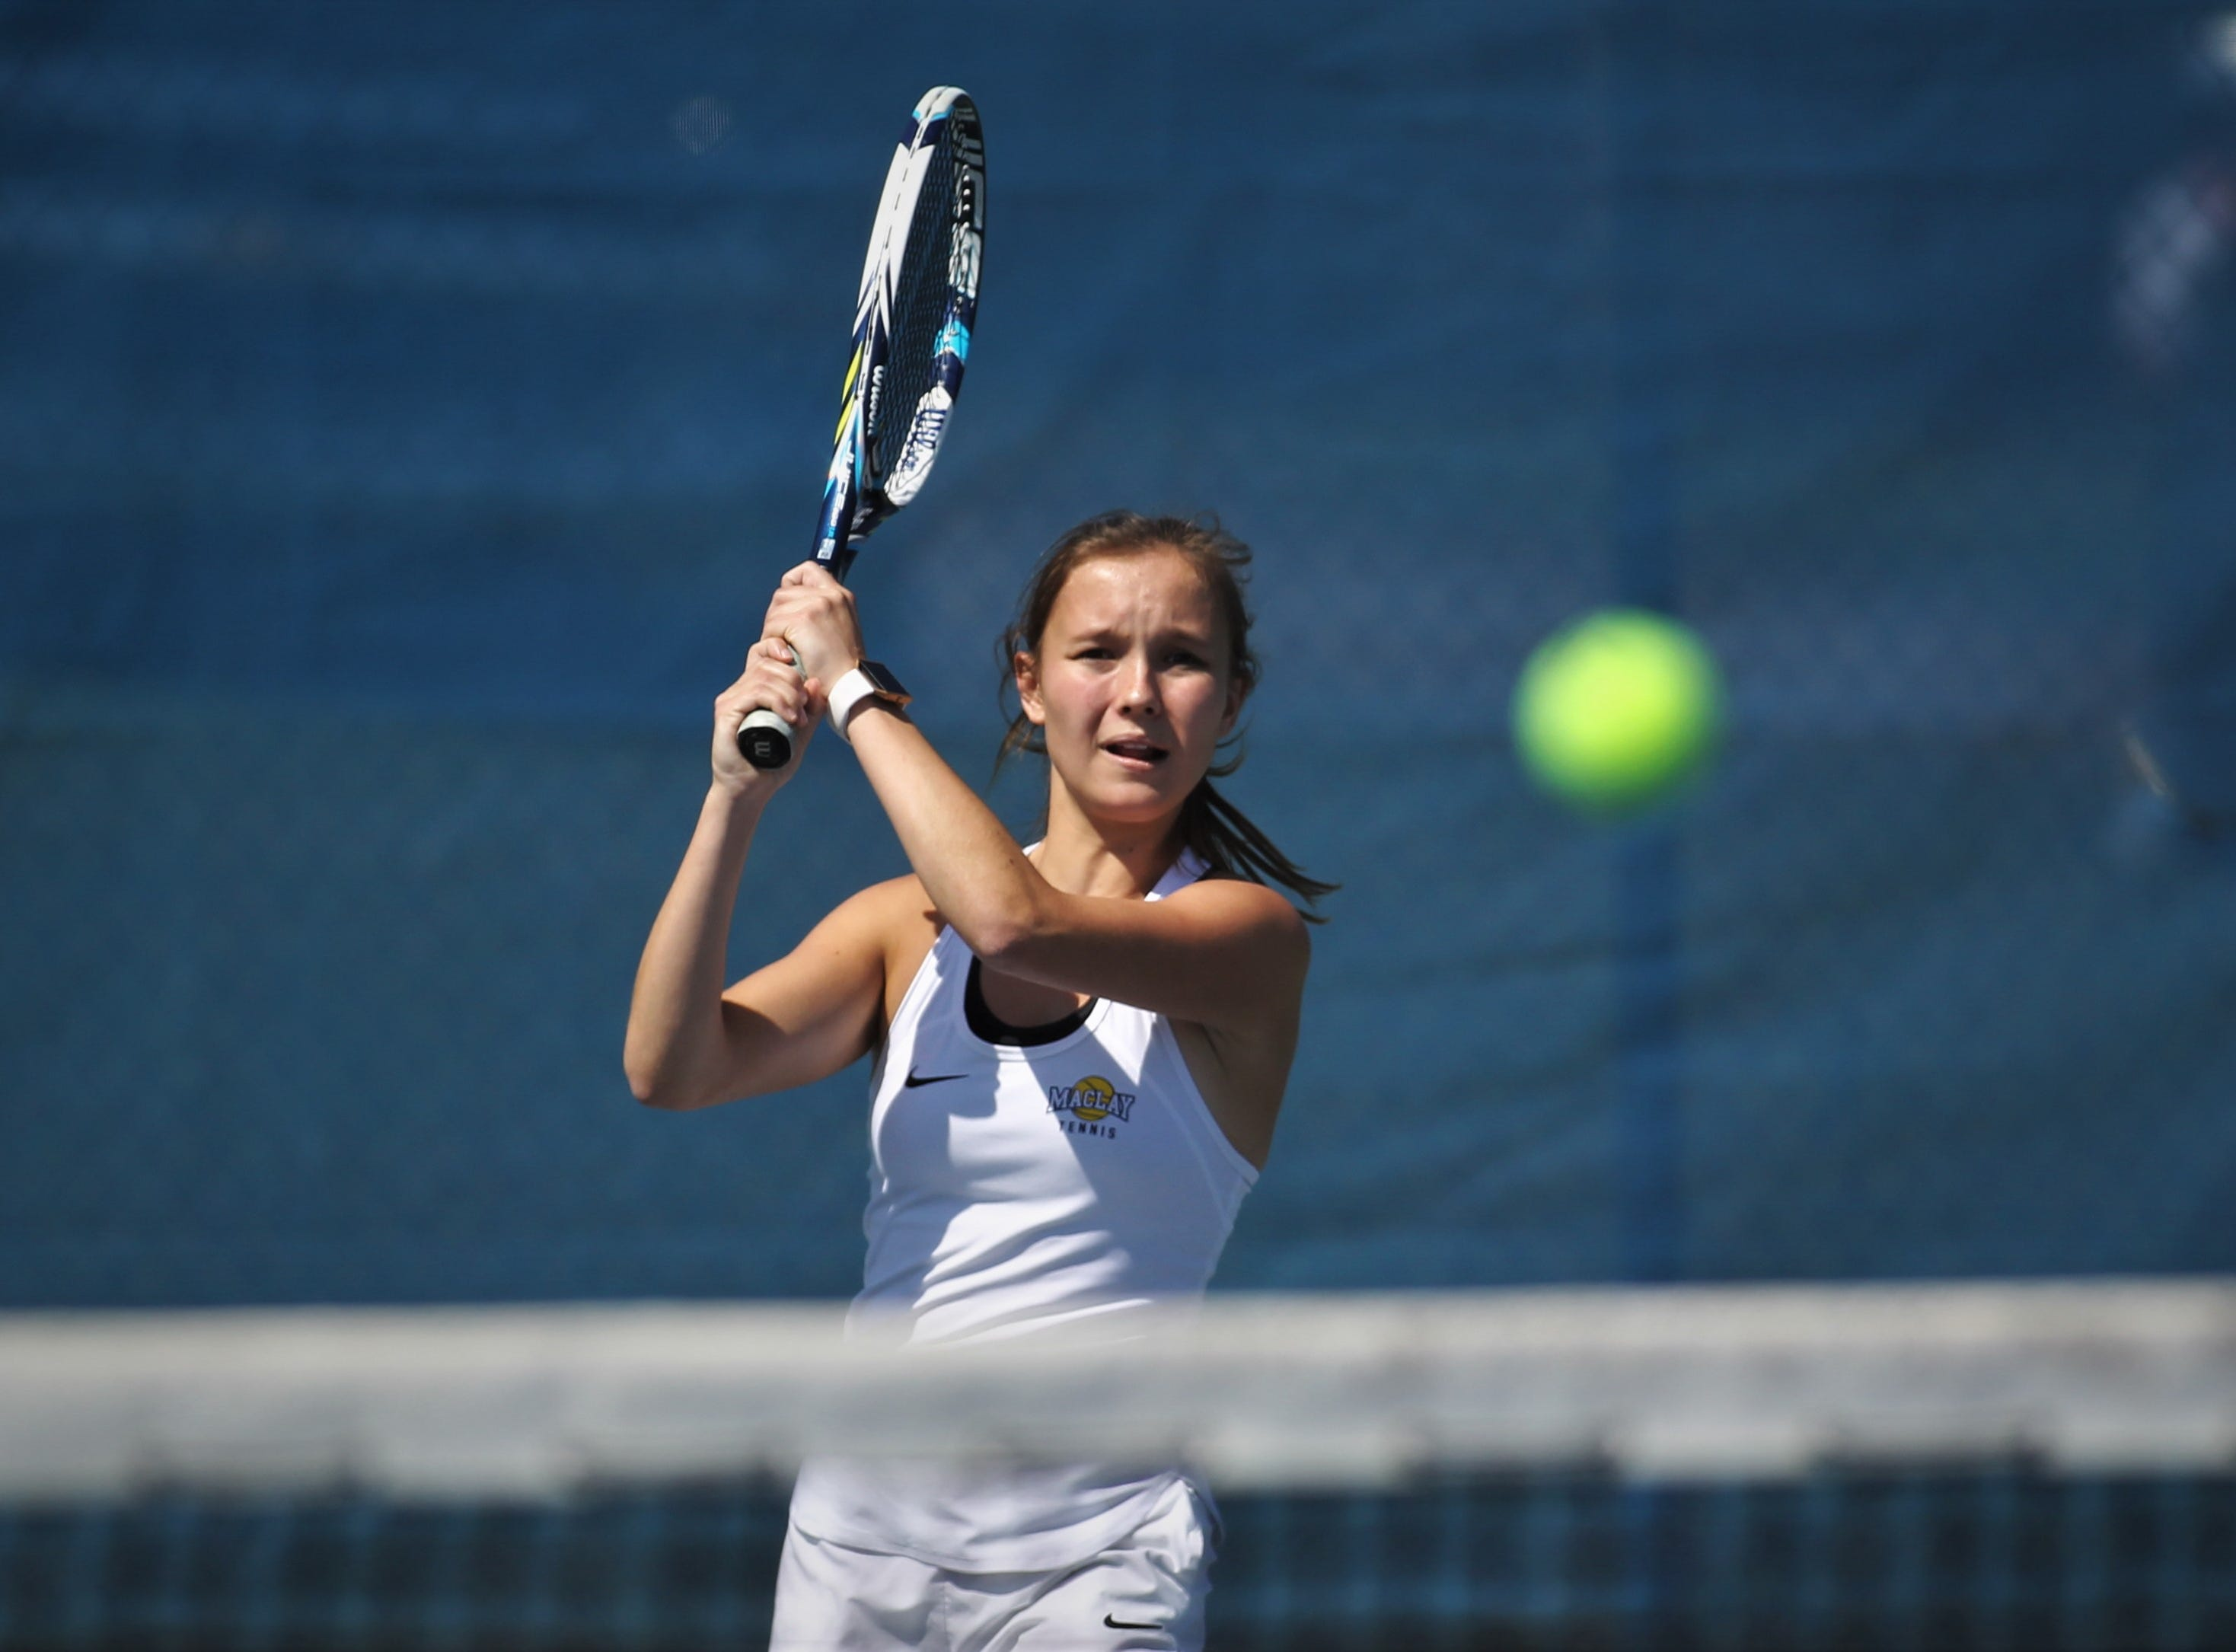 Maclay's Rachael Stockel watches a return shot during the boys and girls tennis 2019 City Tournament at Tom Brown Park on March 12, 2019.